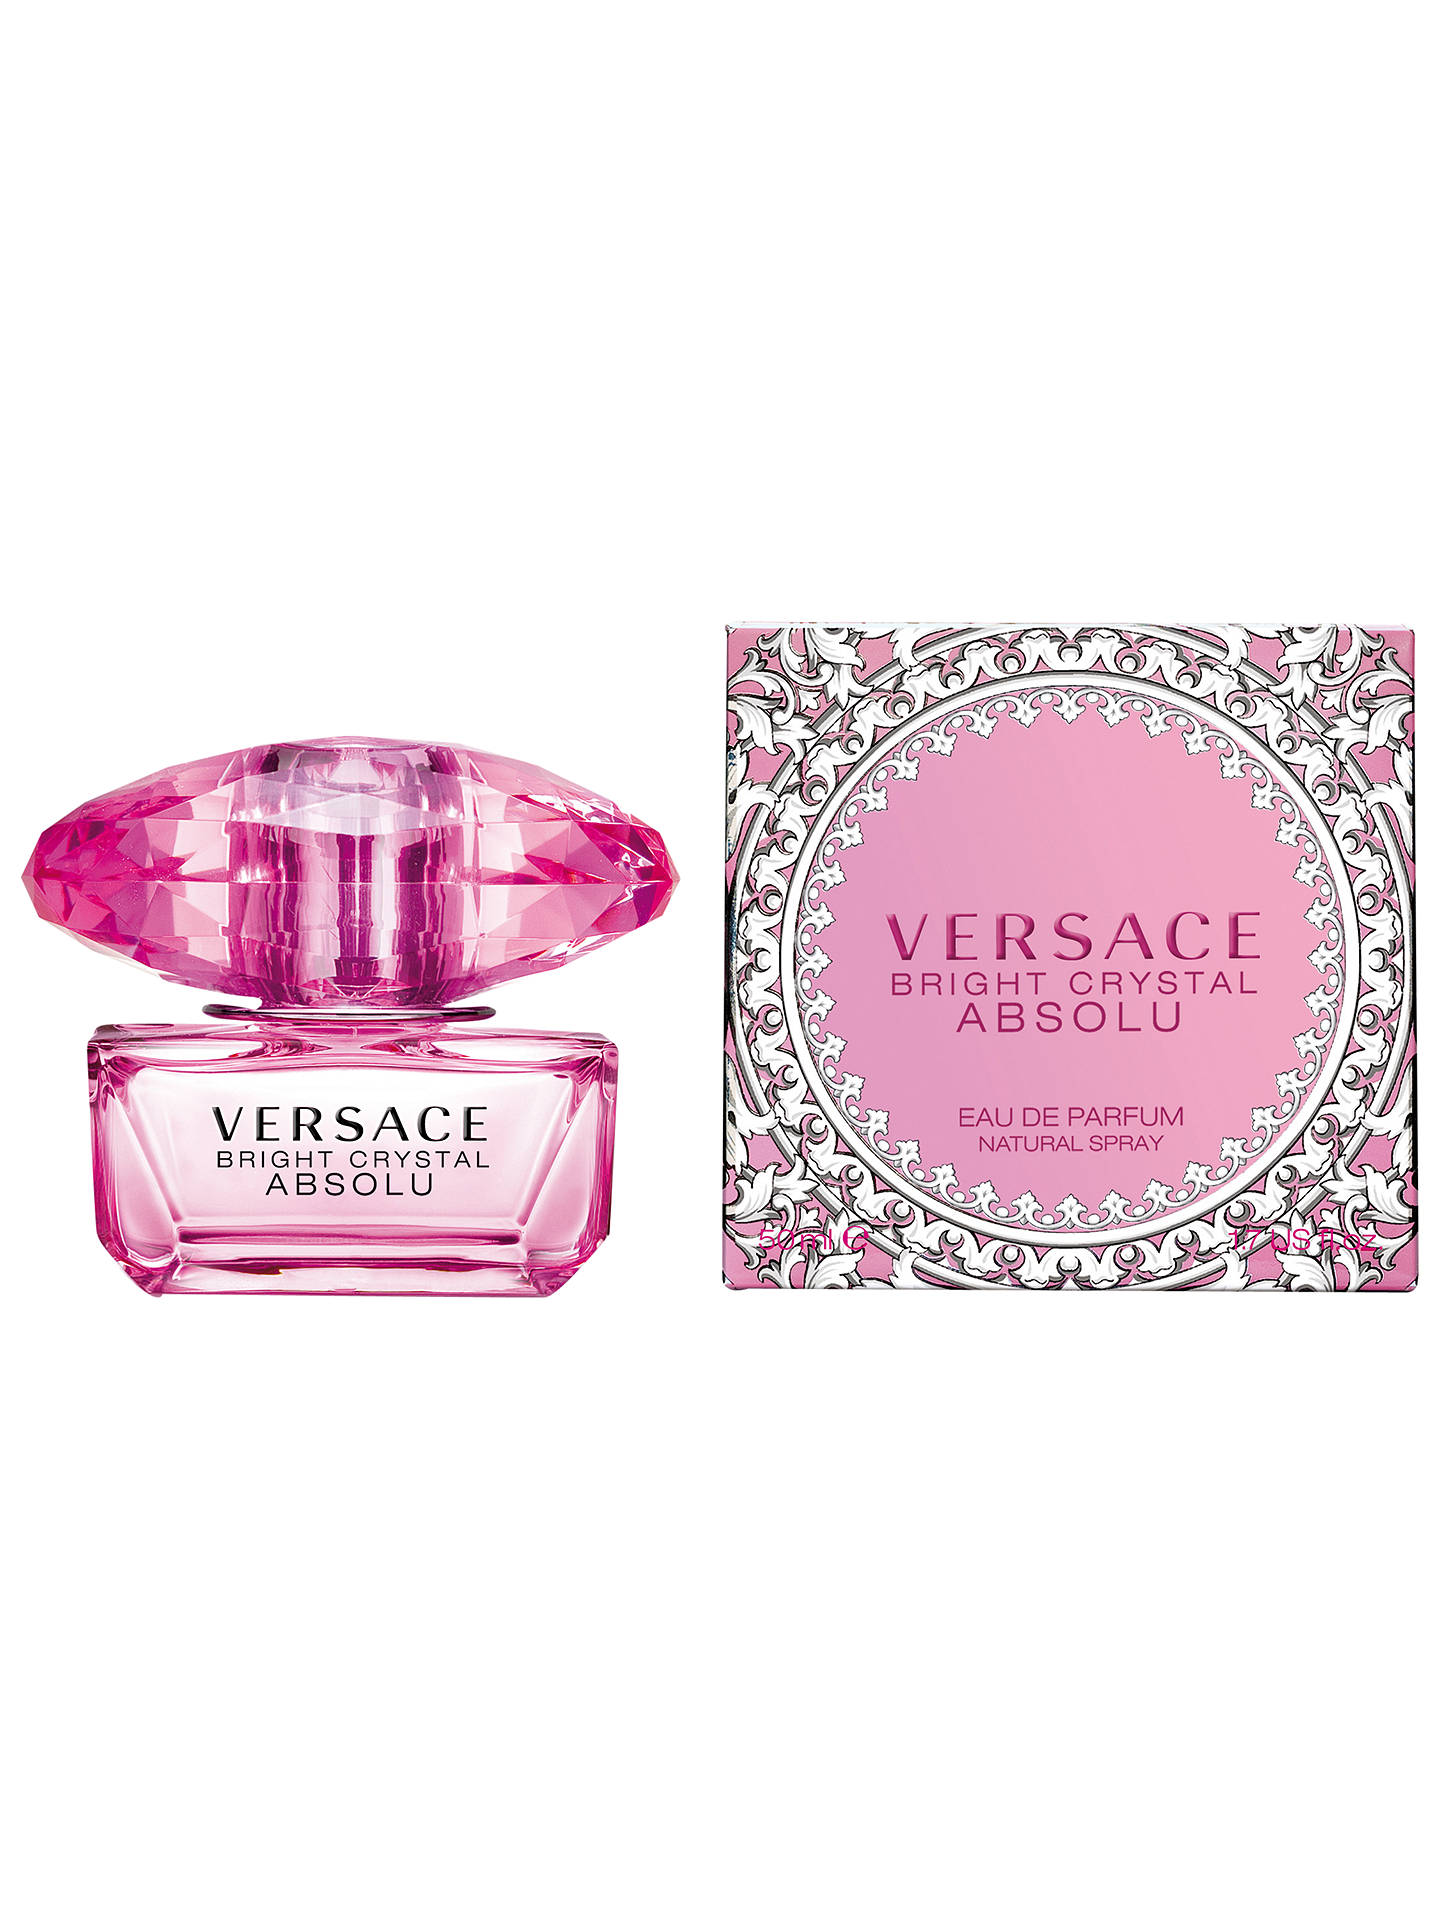 c6388ea51804 Versace Bright Crystal Absolu Eau de Parfum at John Lewis   Partners